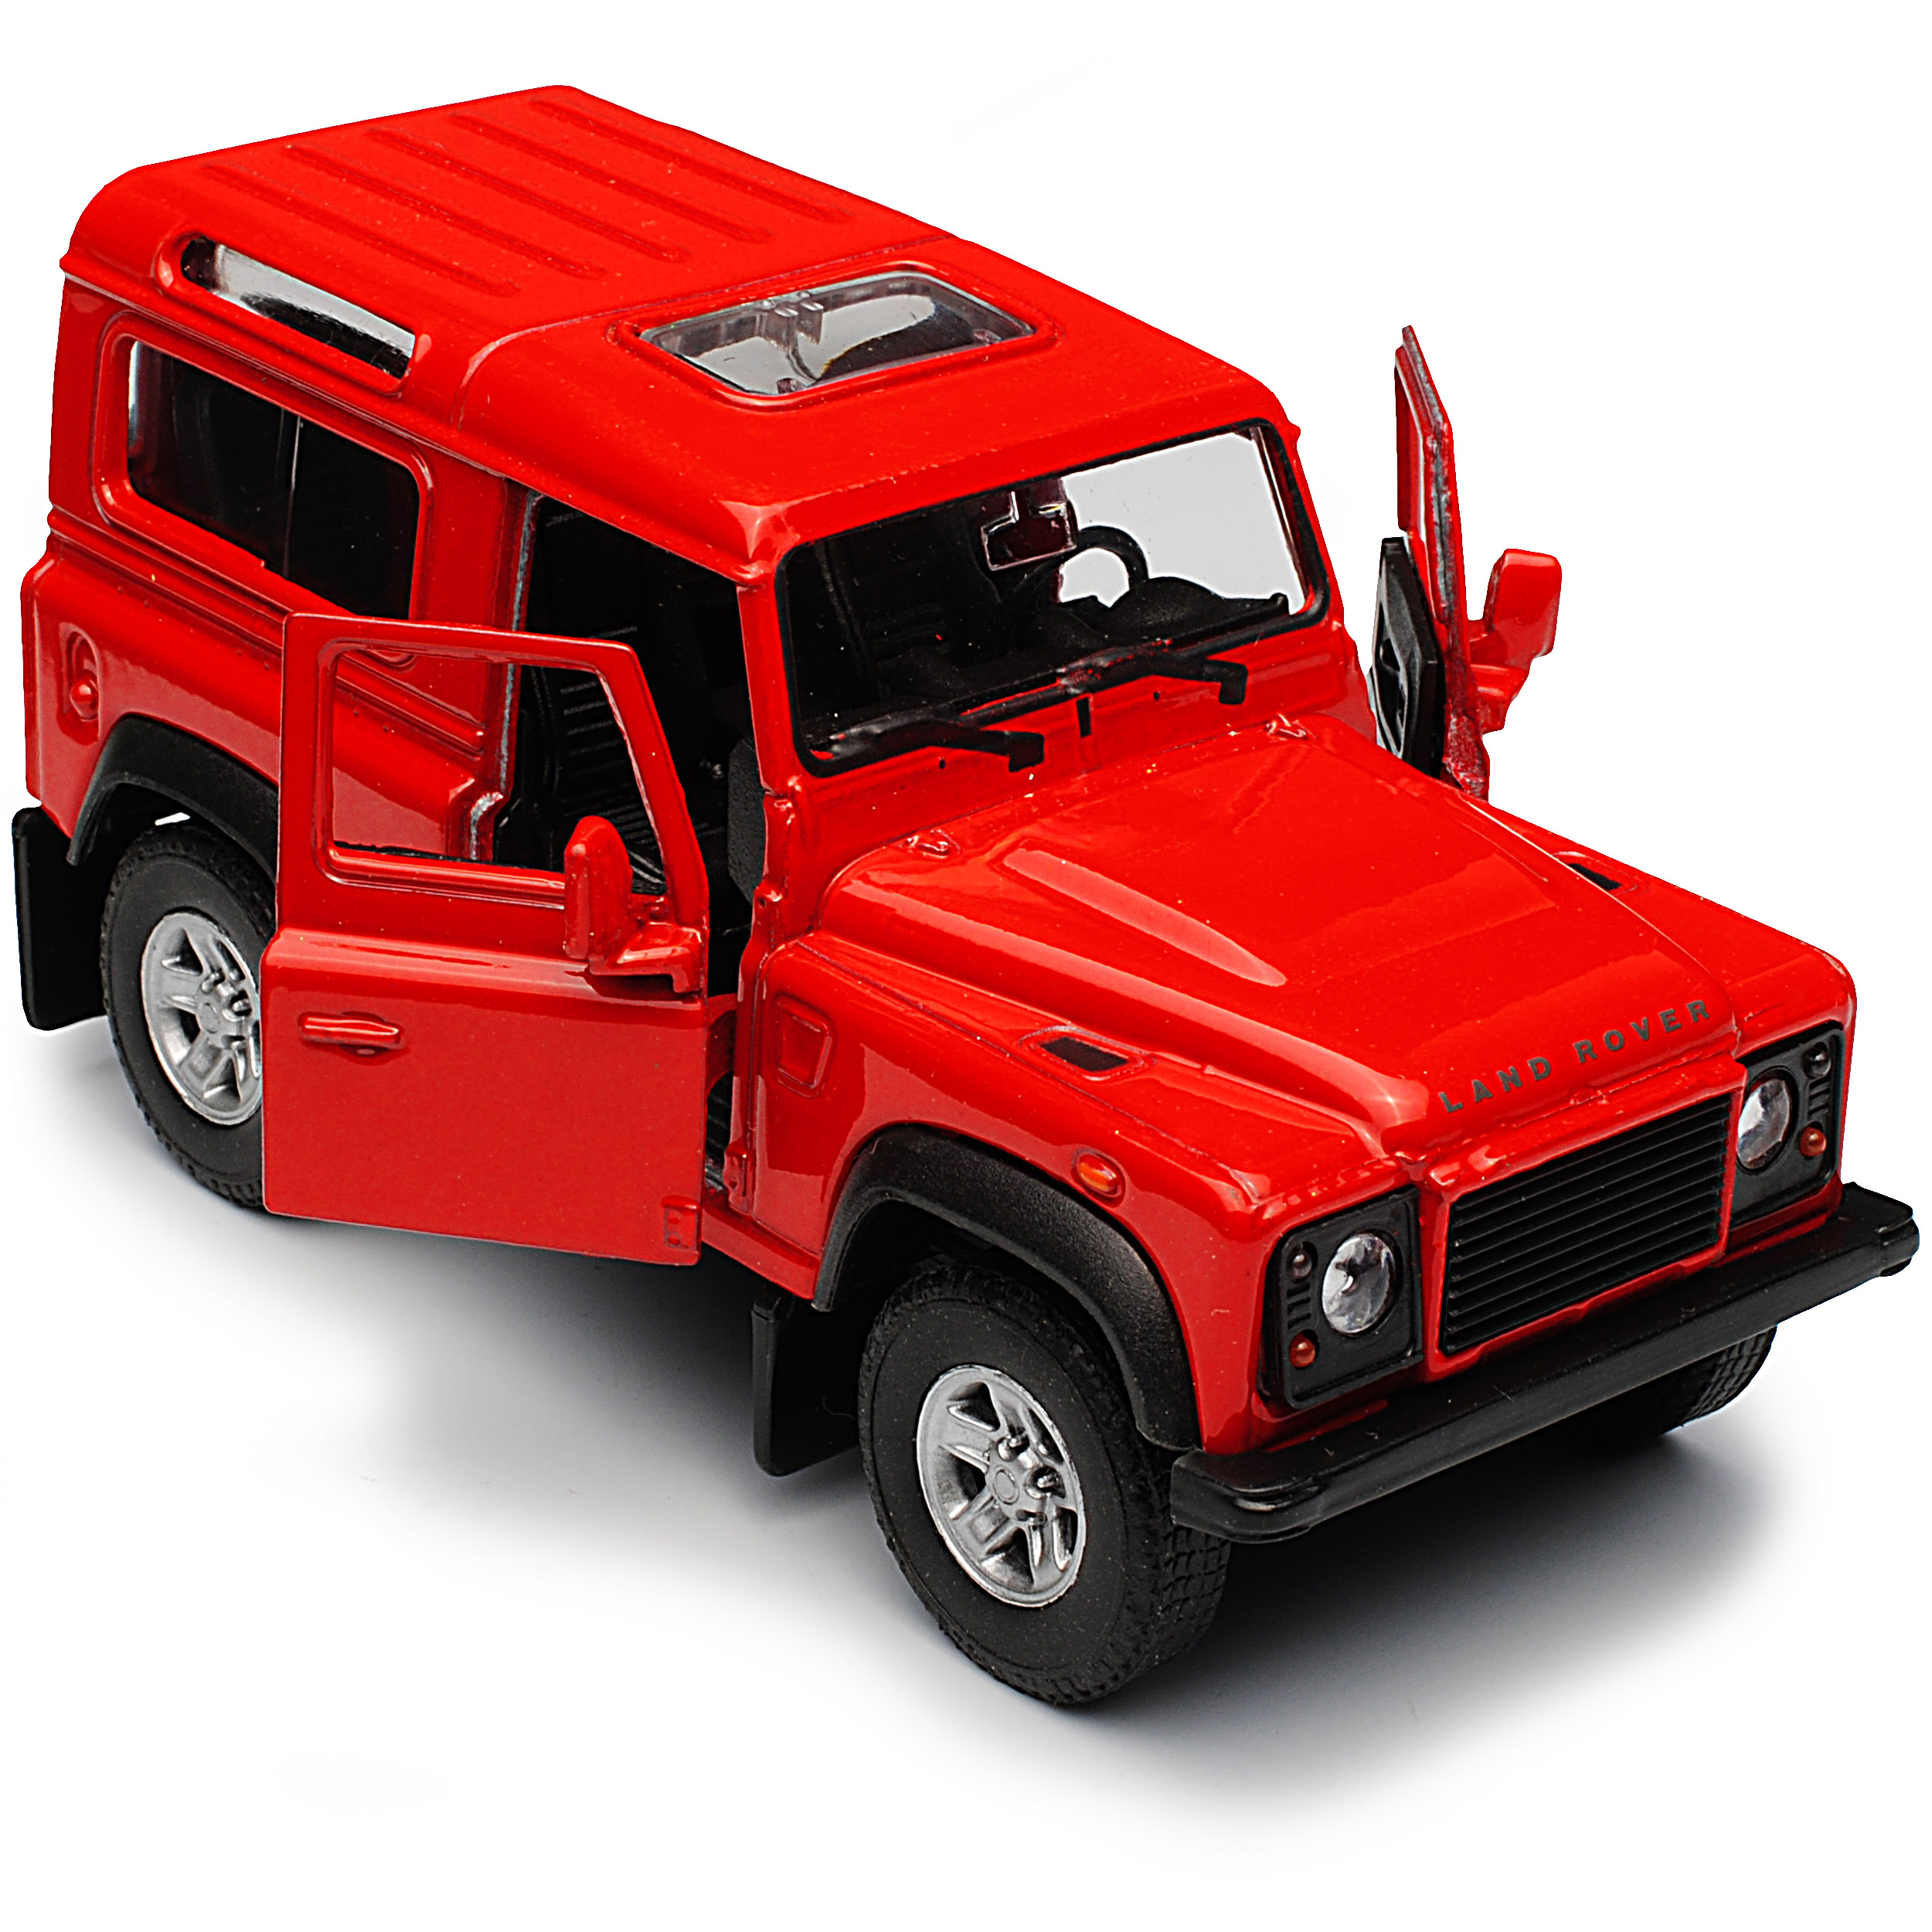 Land Rover Defender 90 Rot 3 Türer ca 1//43 1//36-1//46 Welly Modell Auto mit ode..